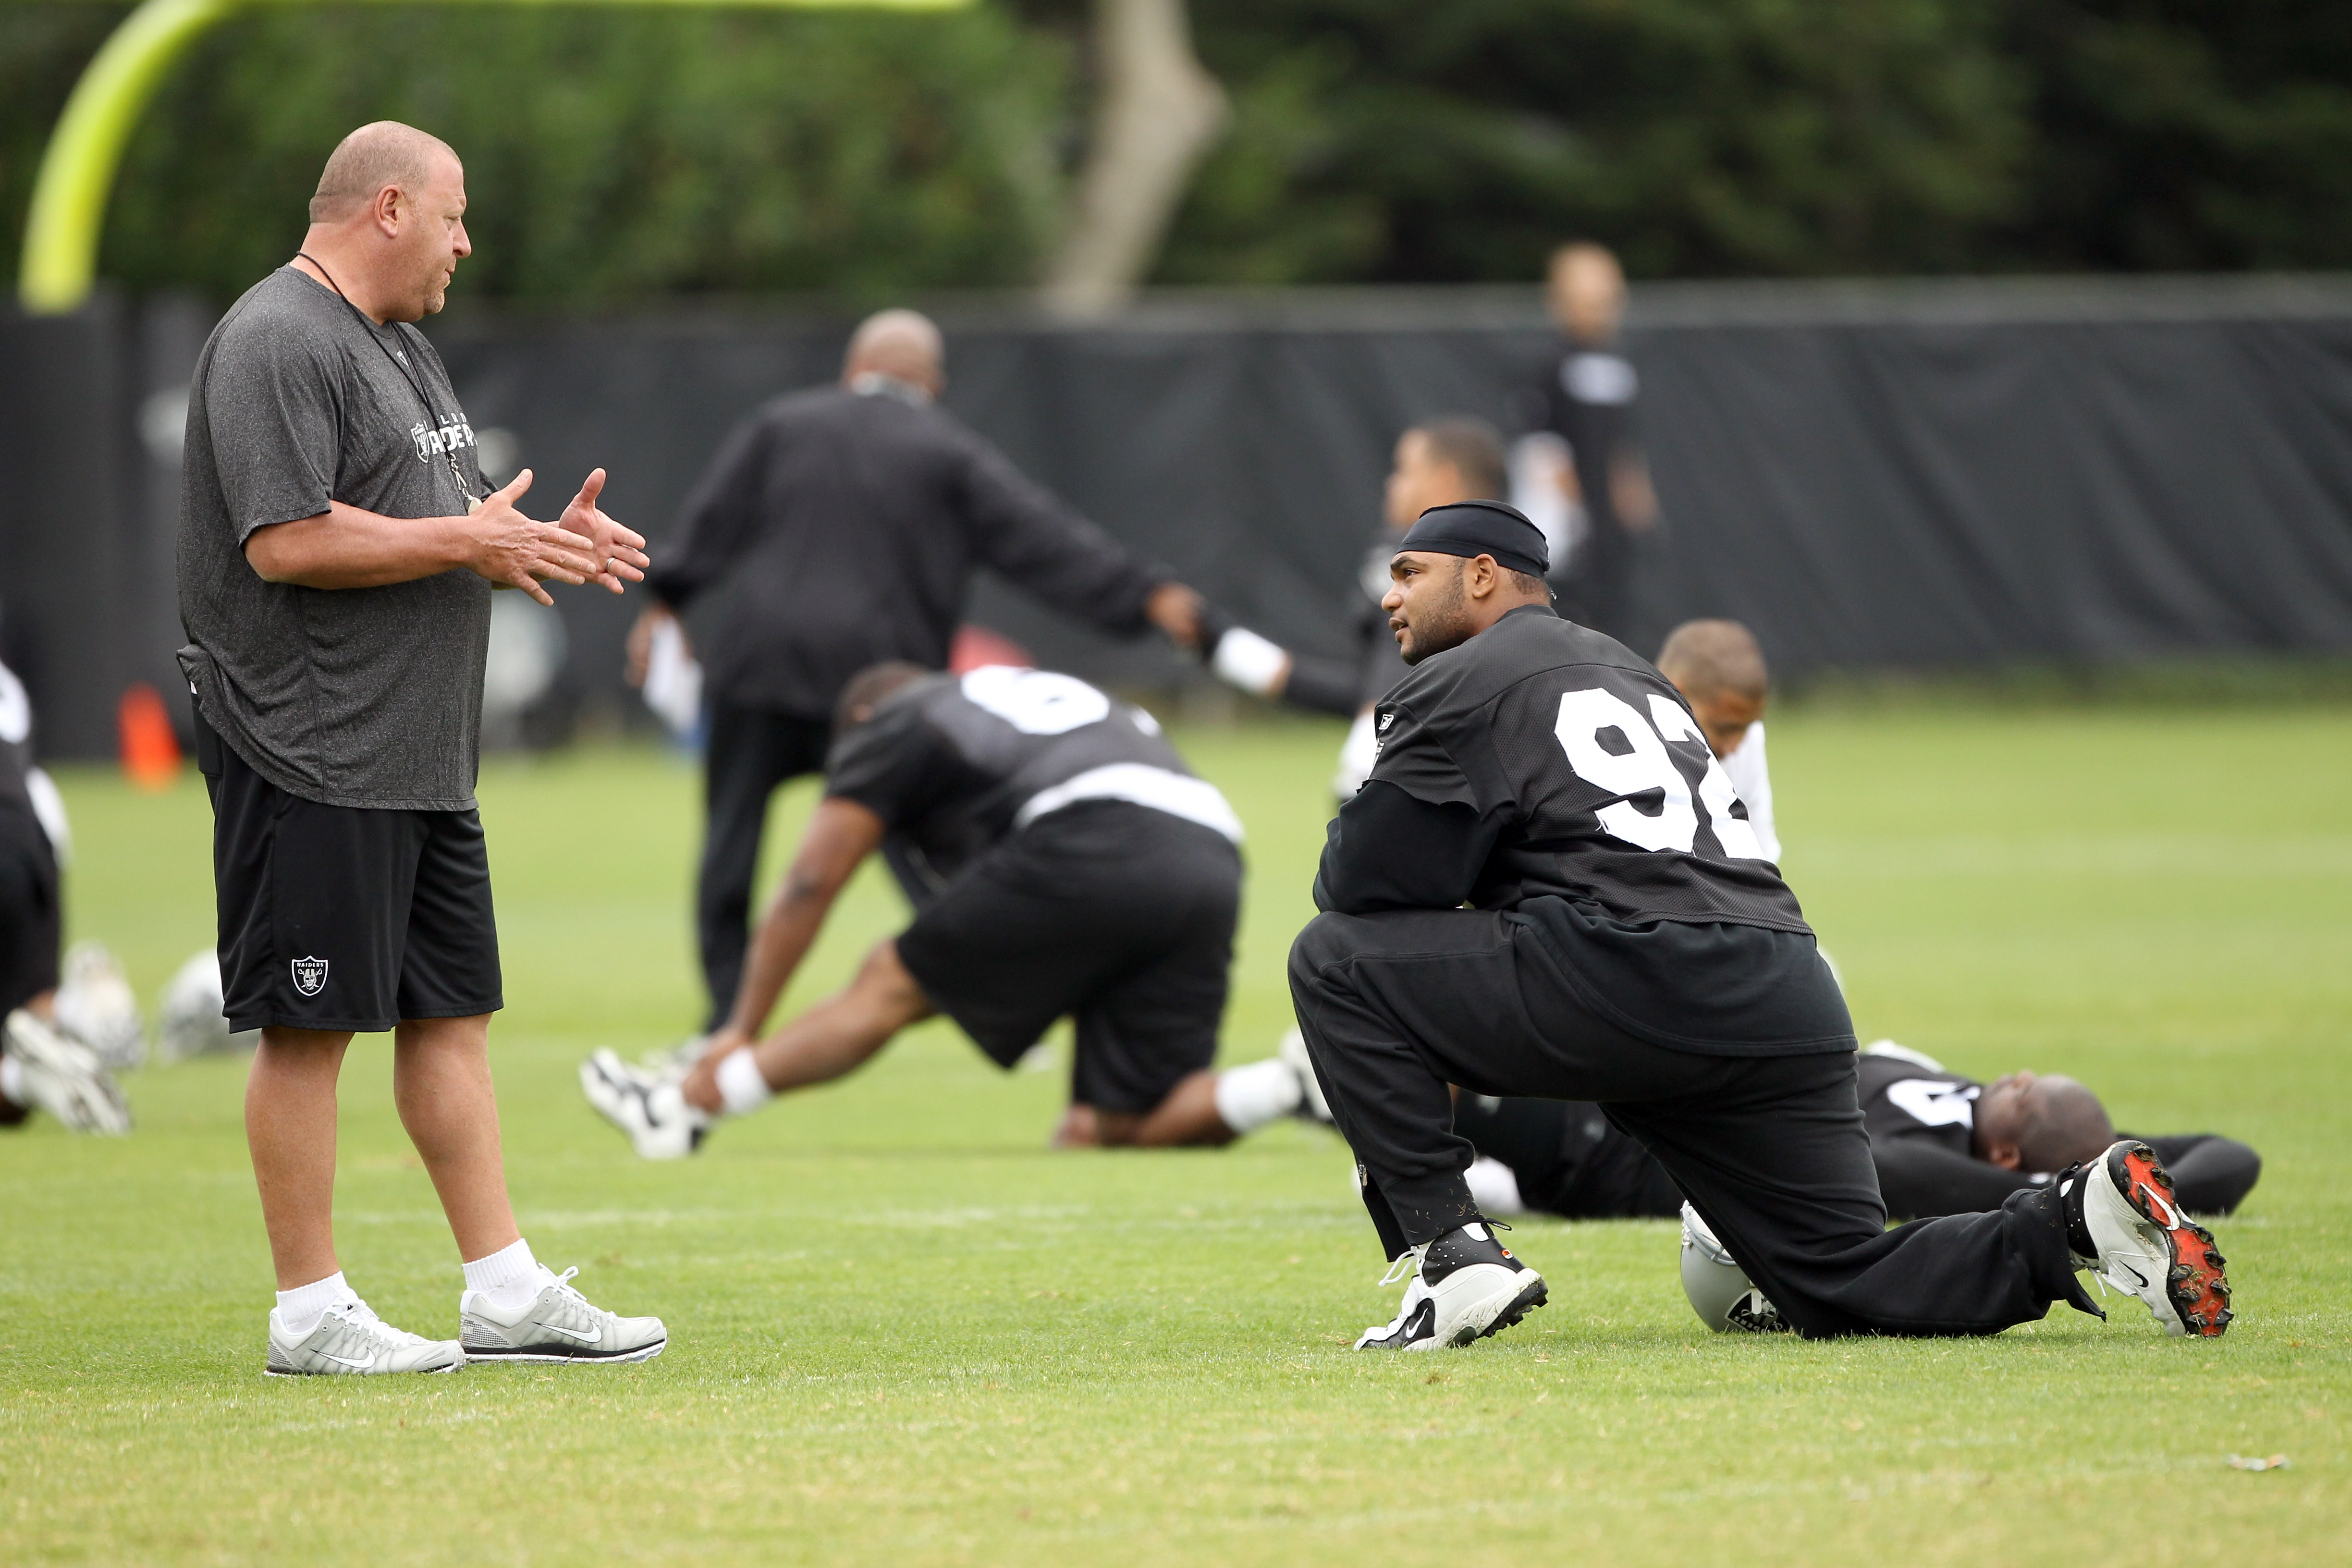 NAPA, CA - AUGUST 01:  Head coach Tom Cable of the Oakland Raiders talks to Richard Seymour #92 during the Raiders training camp at their Napa Valley Training Complex on August 1, 2010 in Napa, California.  (Photo by Ezra Shaw/Getty Images)